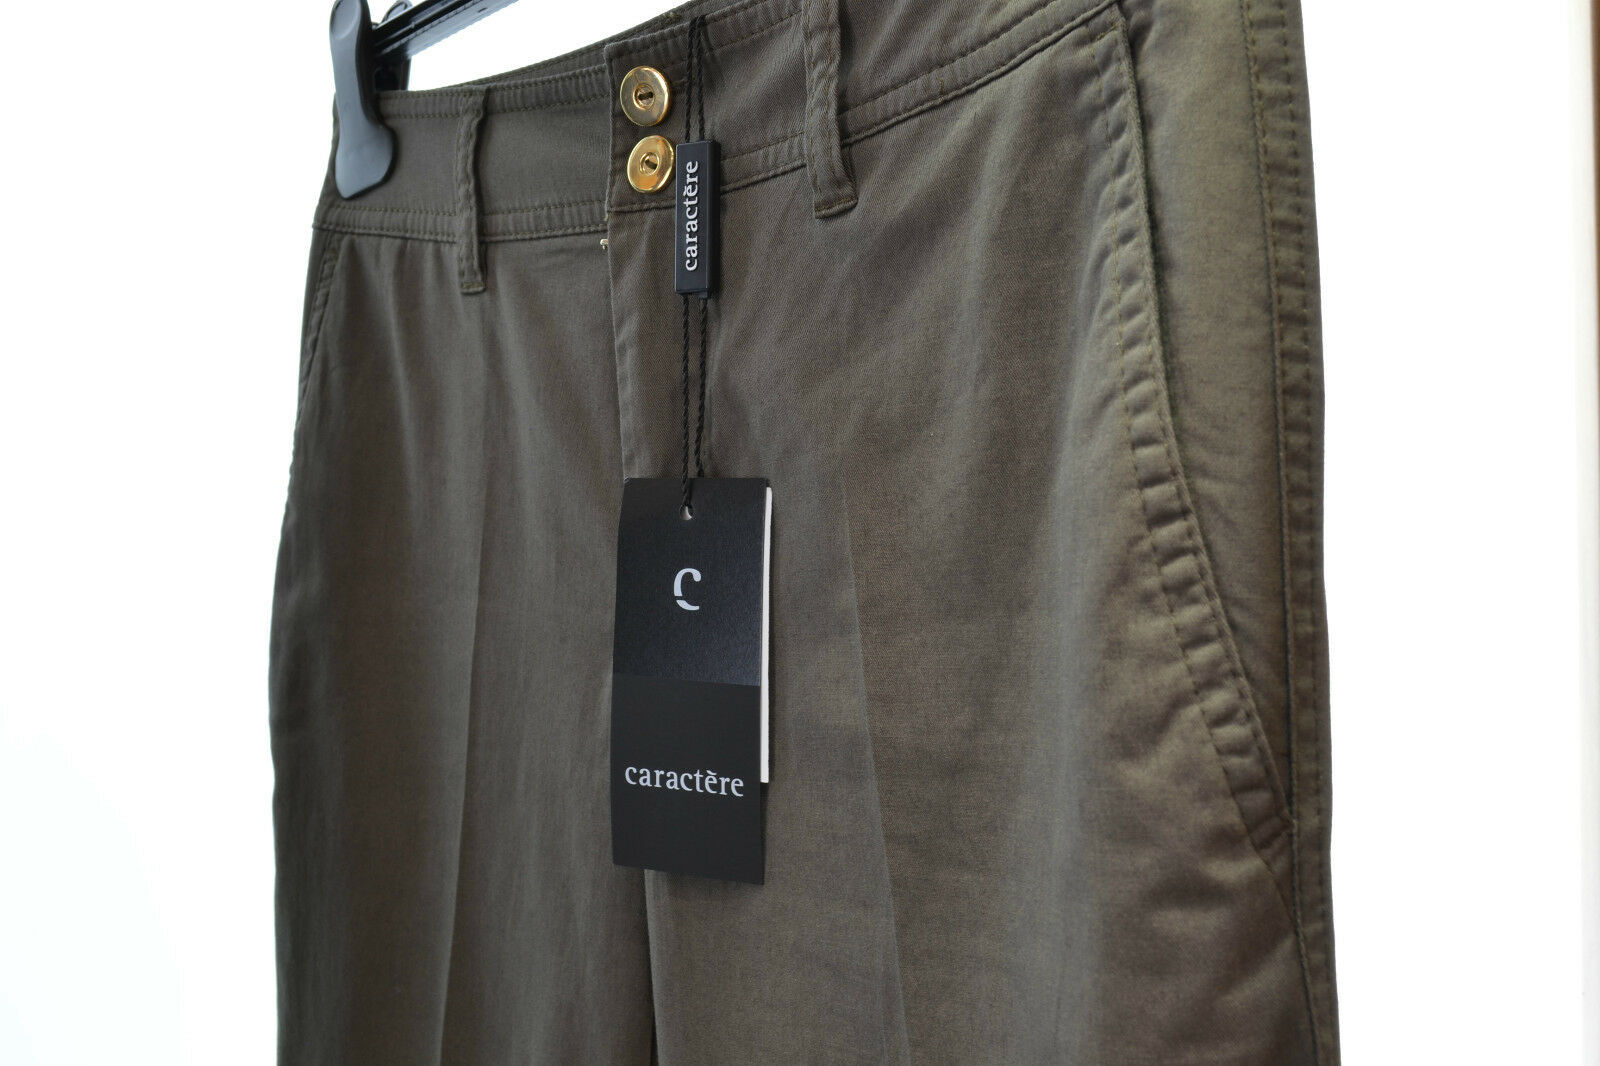 CARACTERE WOMEN'S TROUSERS SIZE 42 MILITARY GREEN COTTON